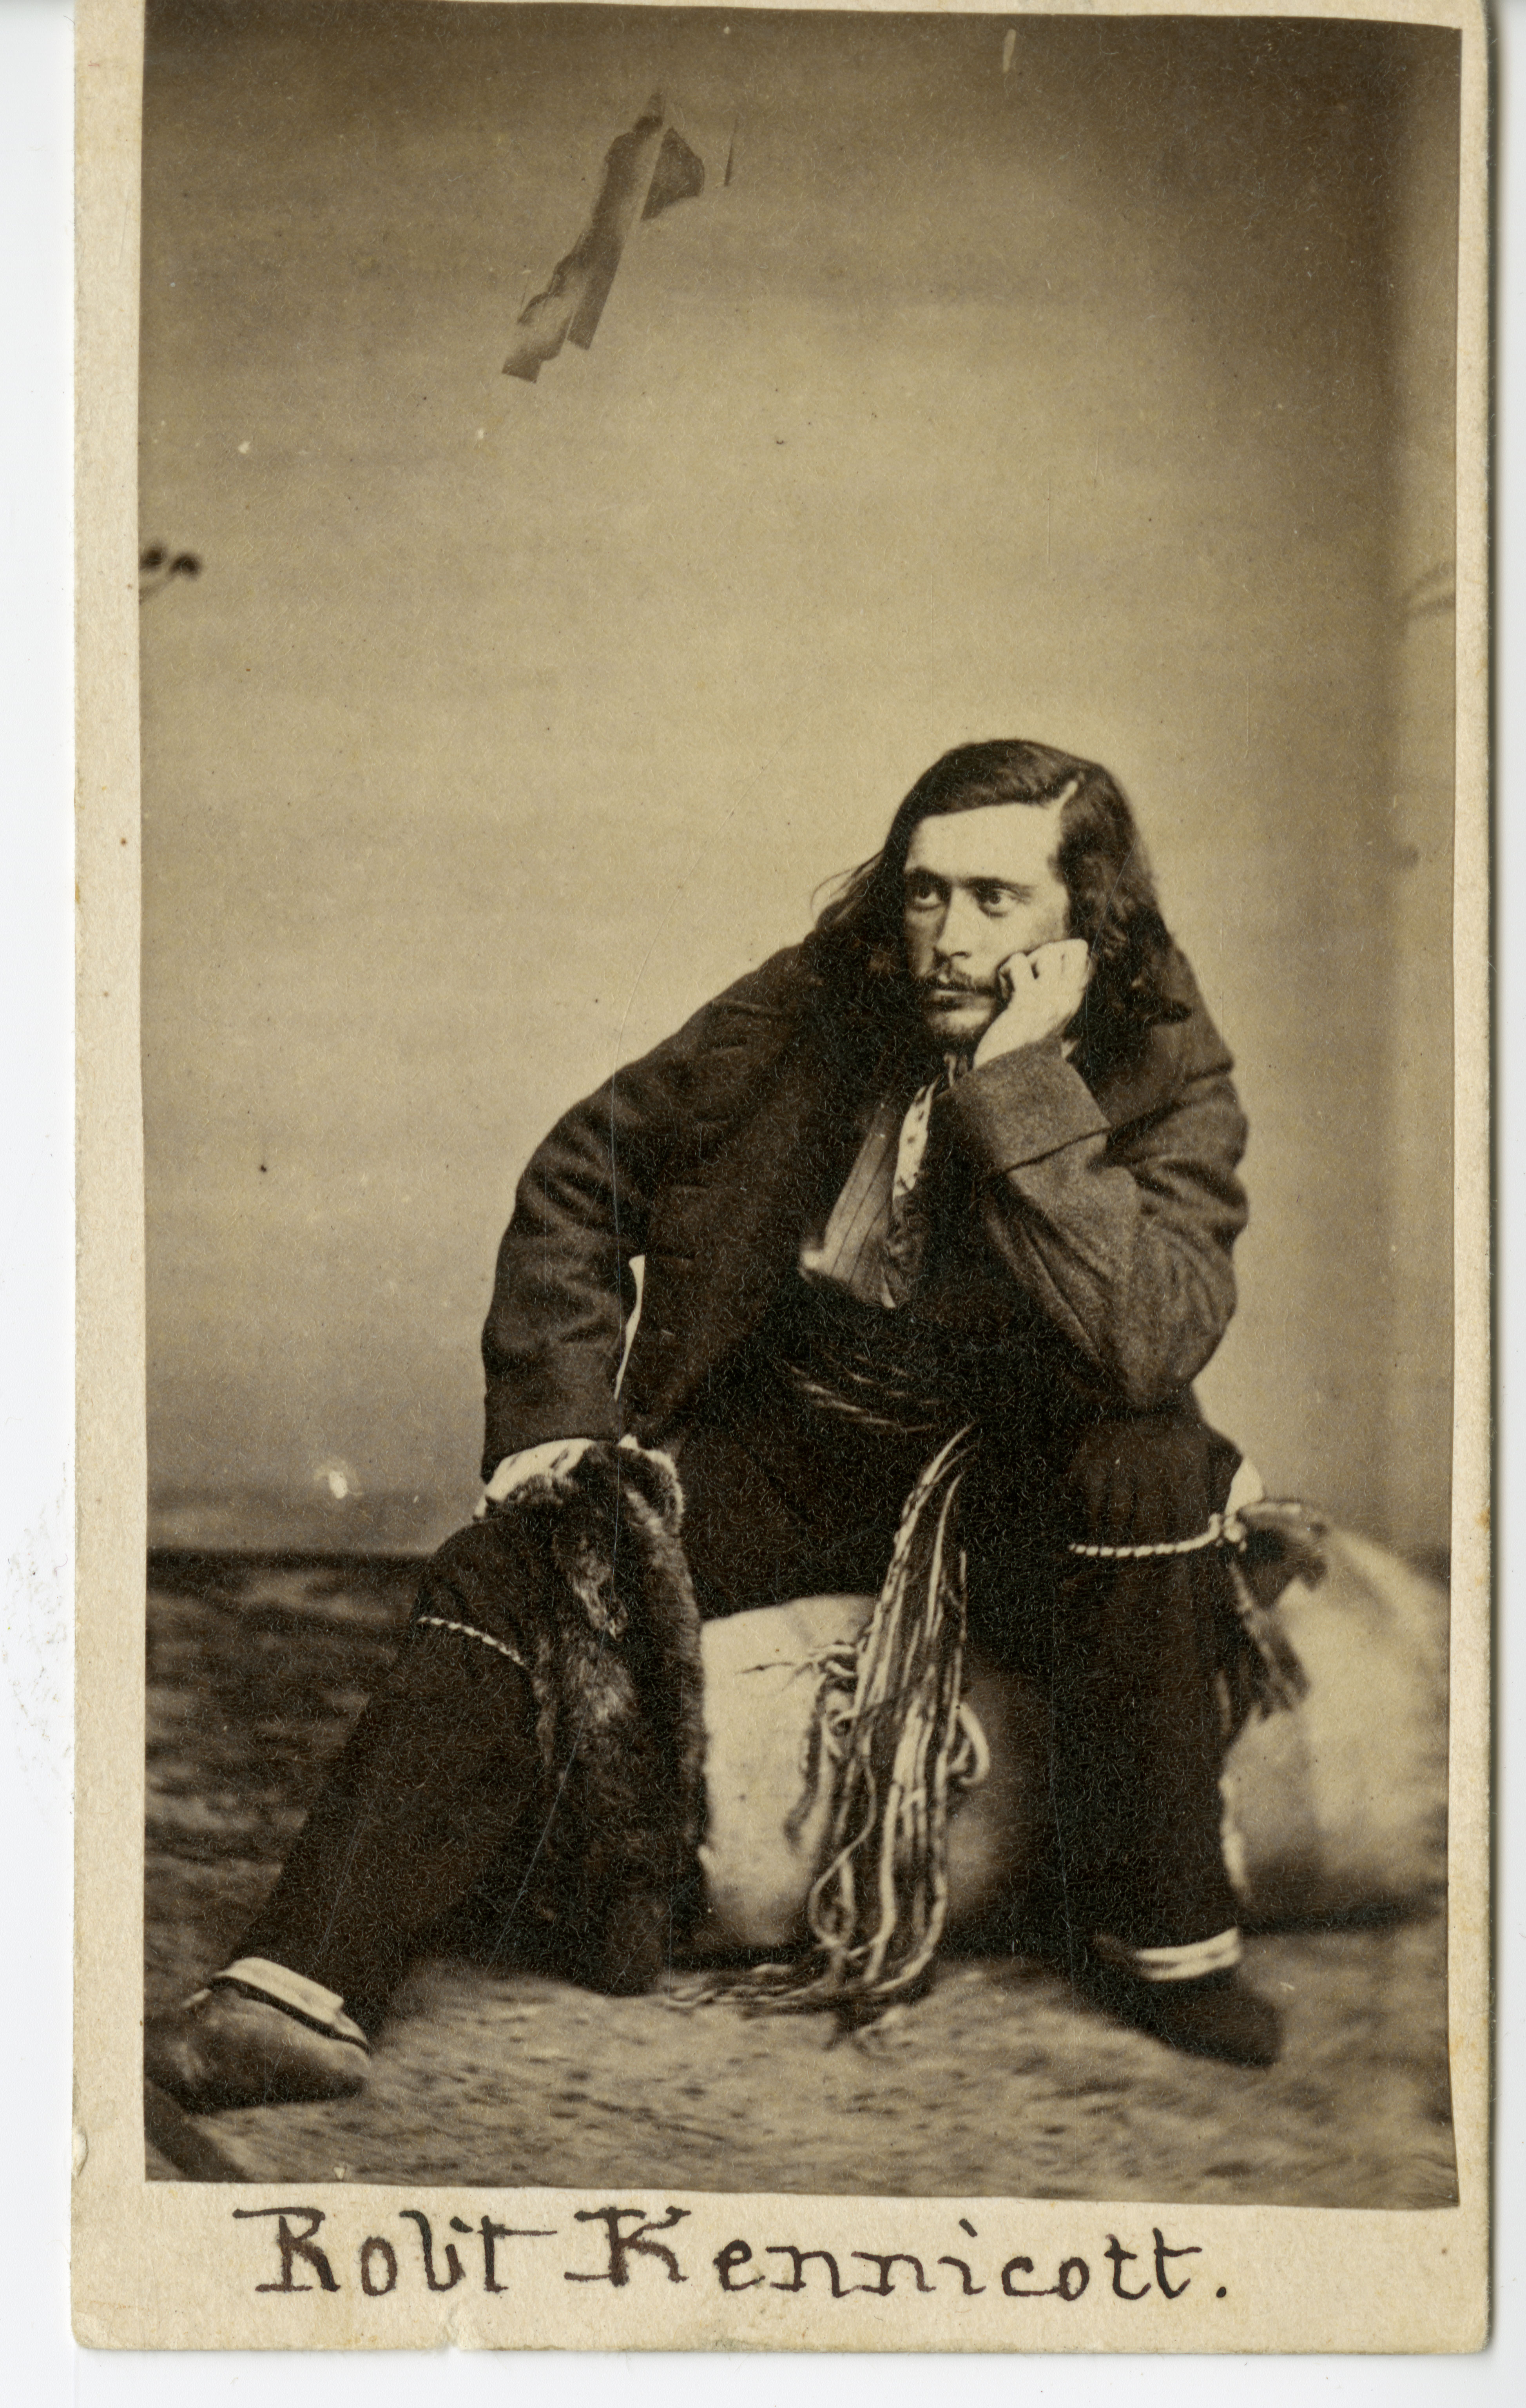 A portrait photograph of a man sitting, He is holding his chin up with a hand and is resting an elbo